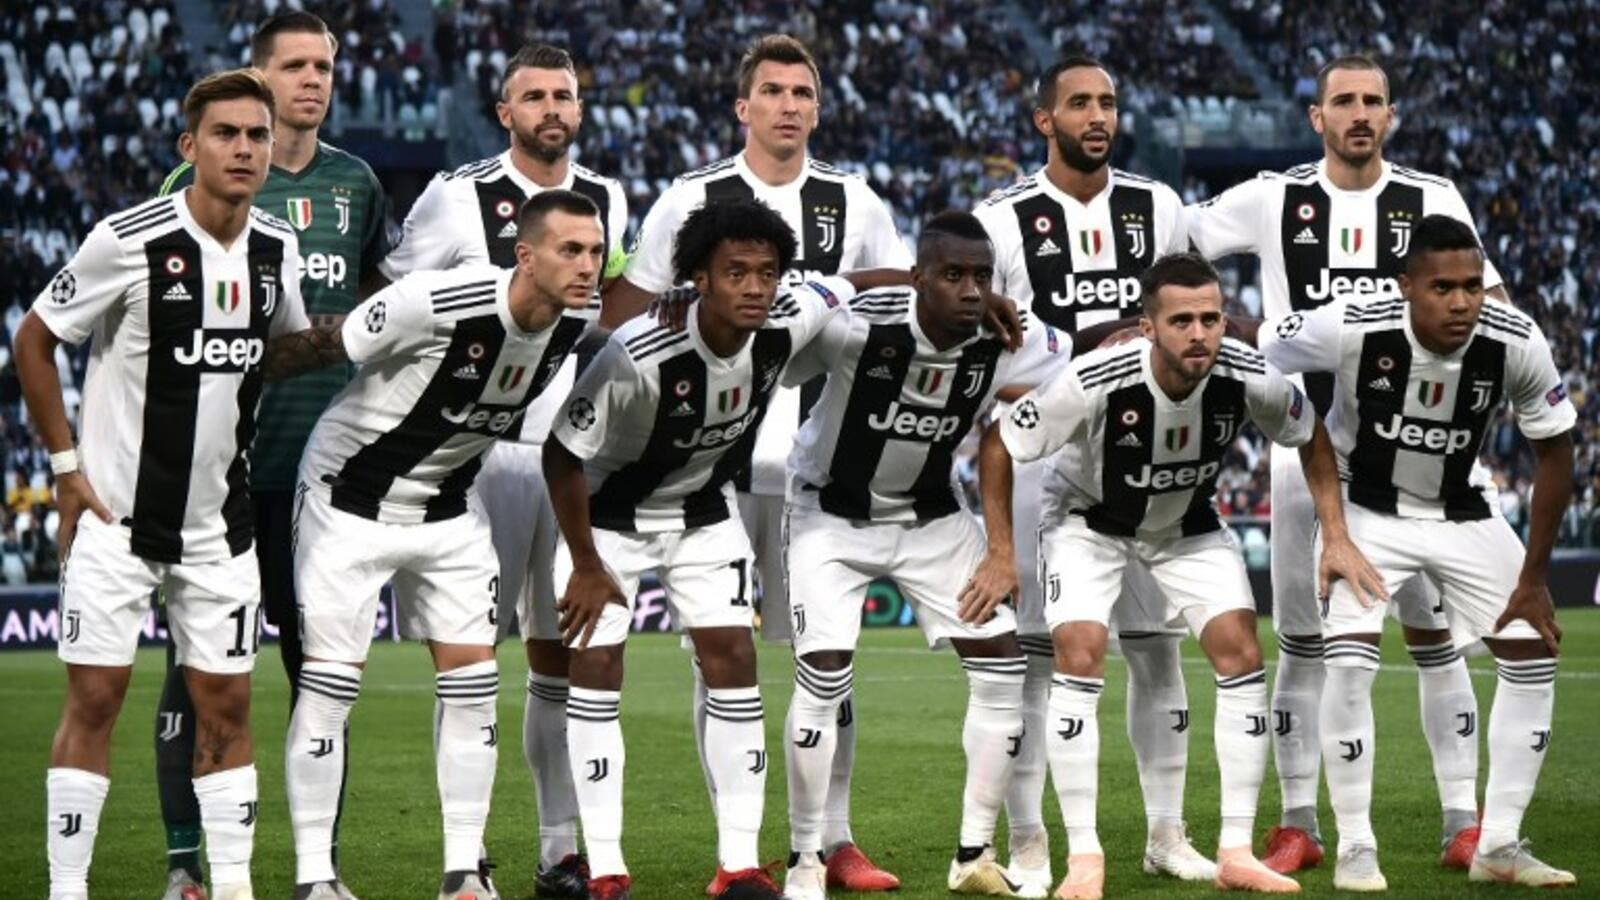 Massimiliano Allegri's side continued their perfect start to the season on Tuesday but the defender has cautioned his teammates against smugness